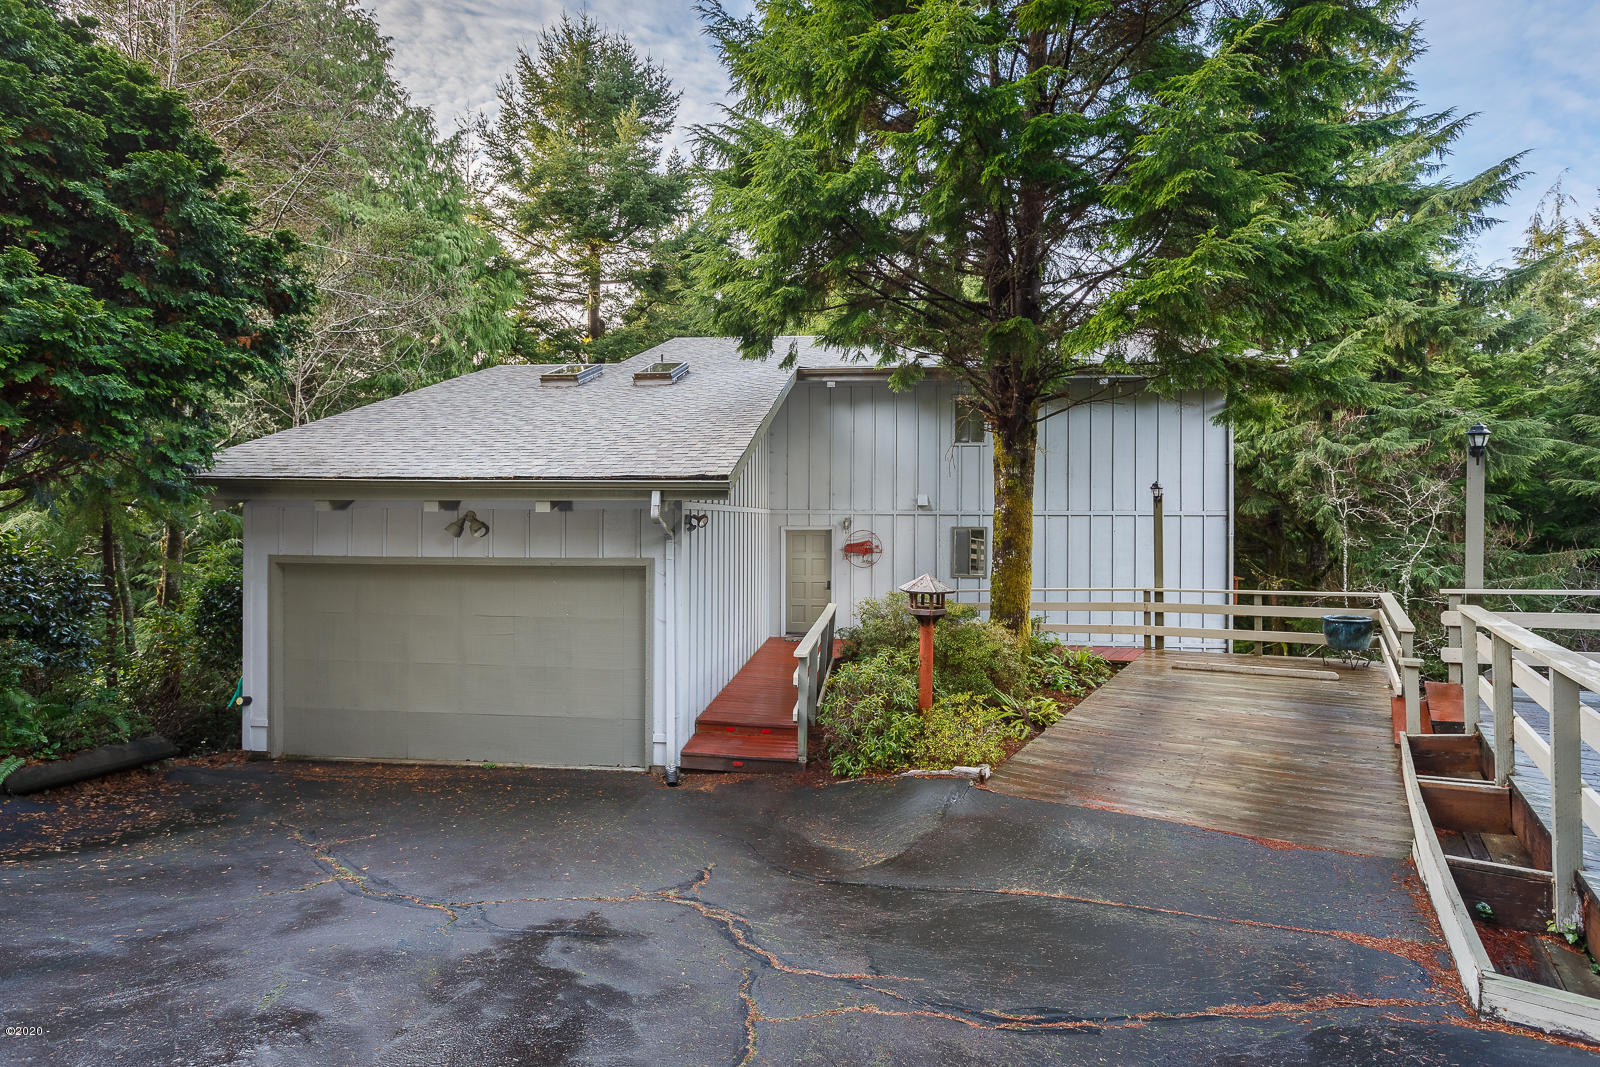 485 Lookout Dr, Gleneden Beach, OR 97388